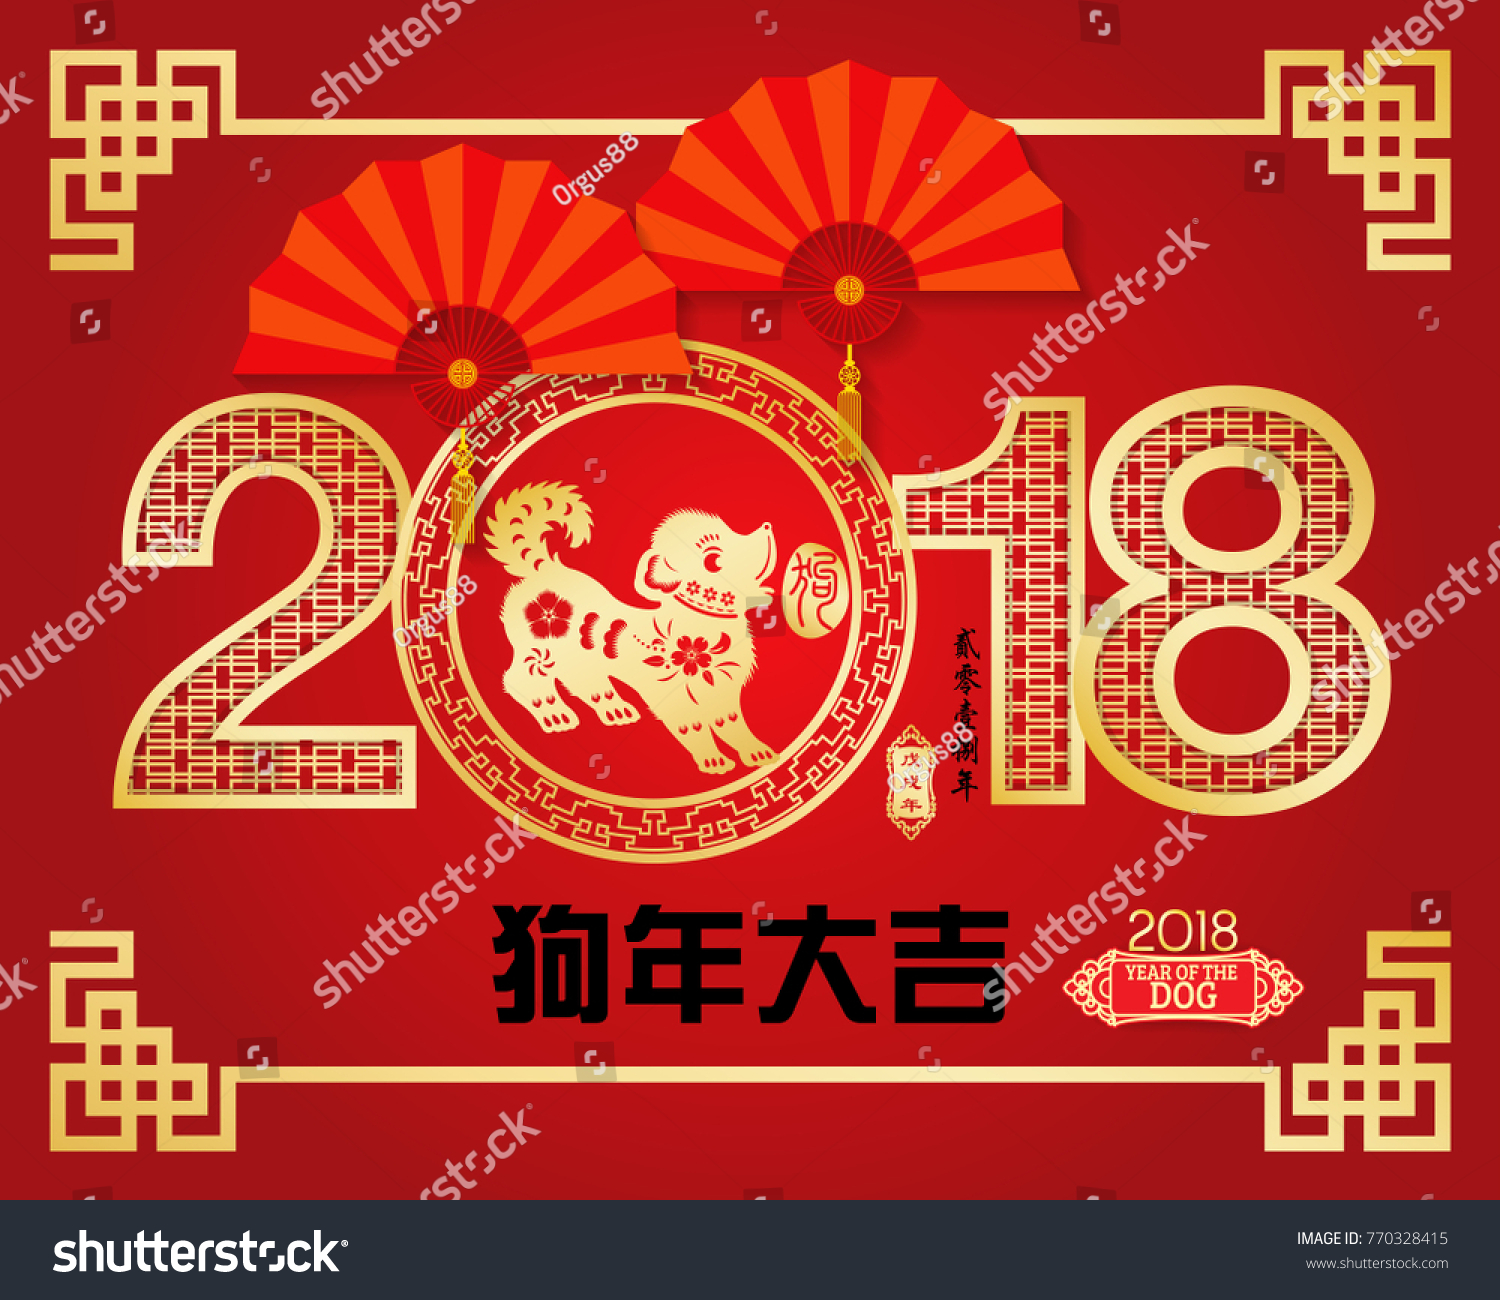 chinese new year 2018 year of the dog vector designchinese character translation happy